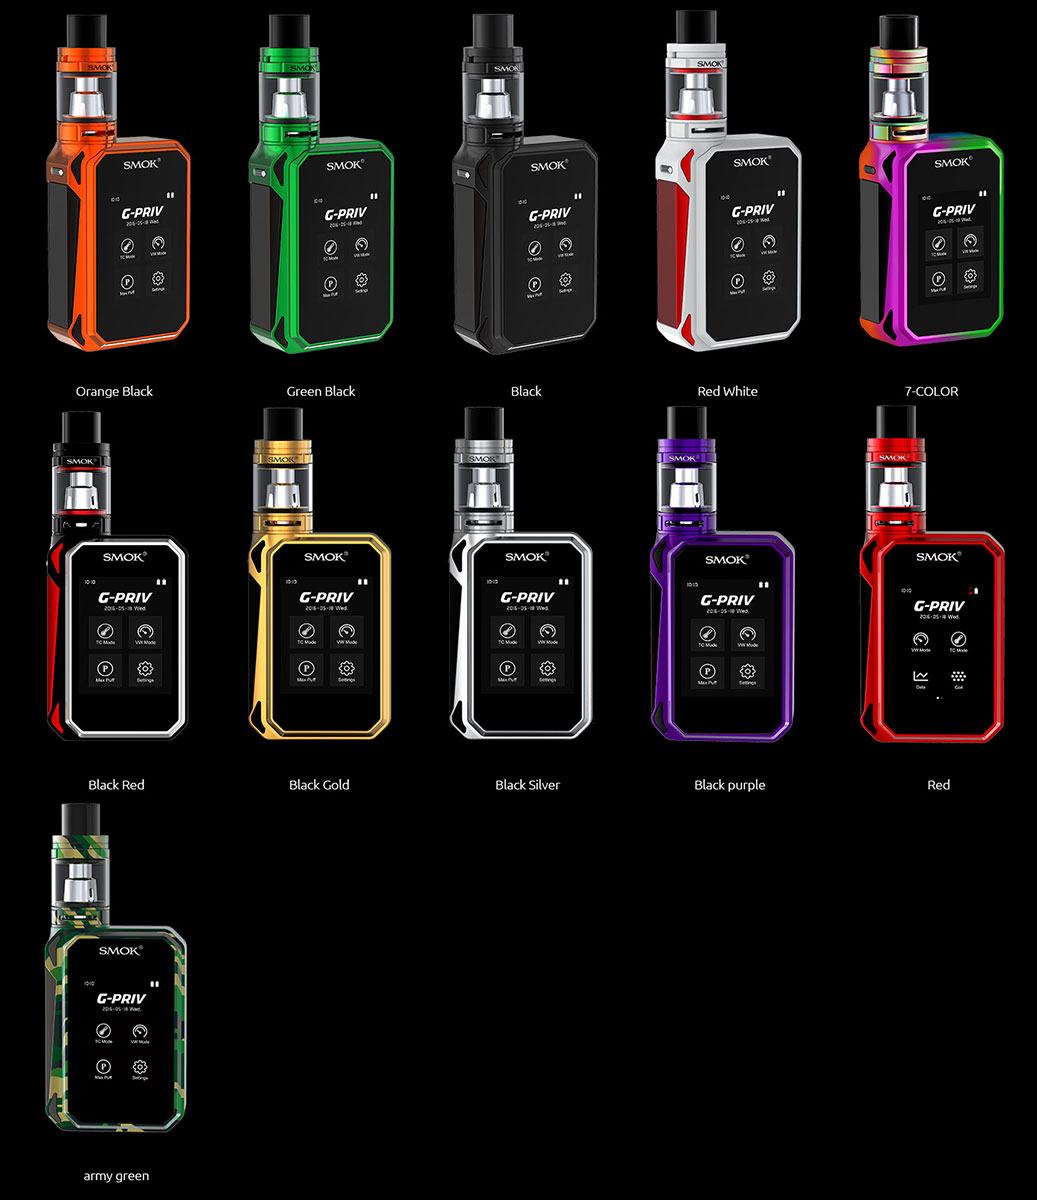 SMOK G-PRIV KIT Available colors: orange black, green black, black, red white, 7-color, rainbow, black red, black gold, black silver, black purple, red army green